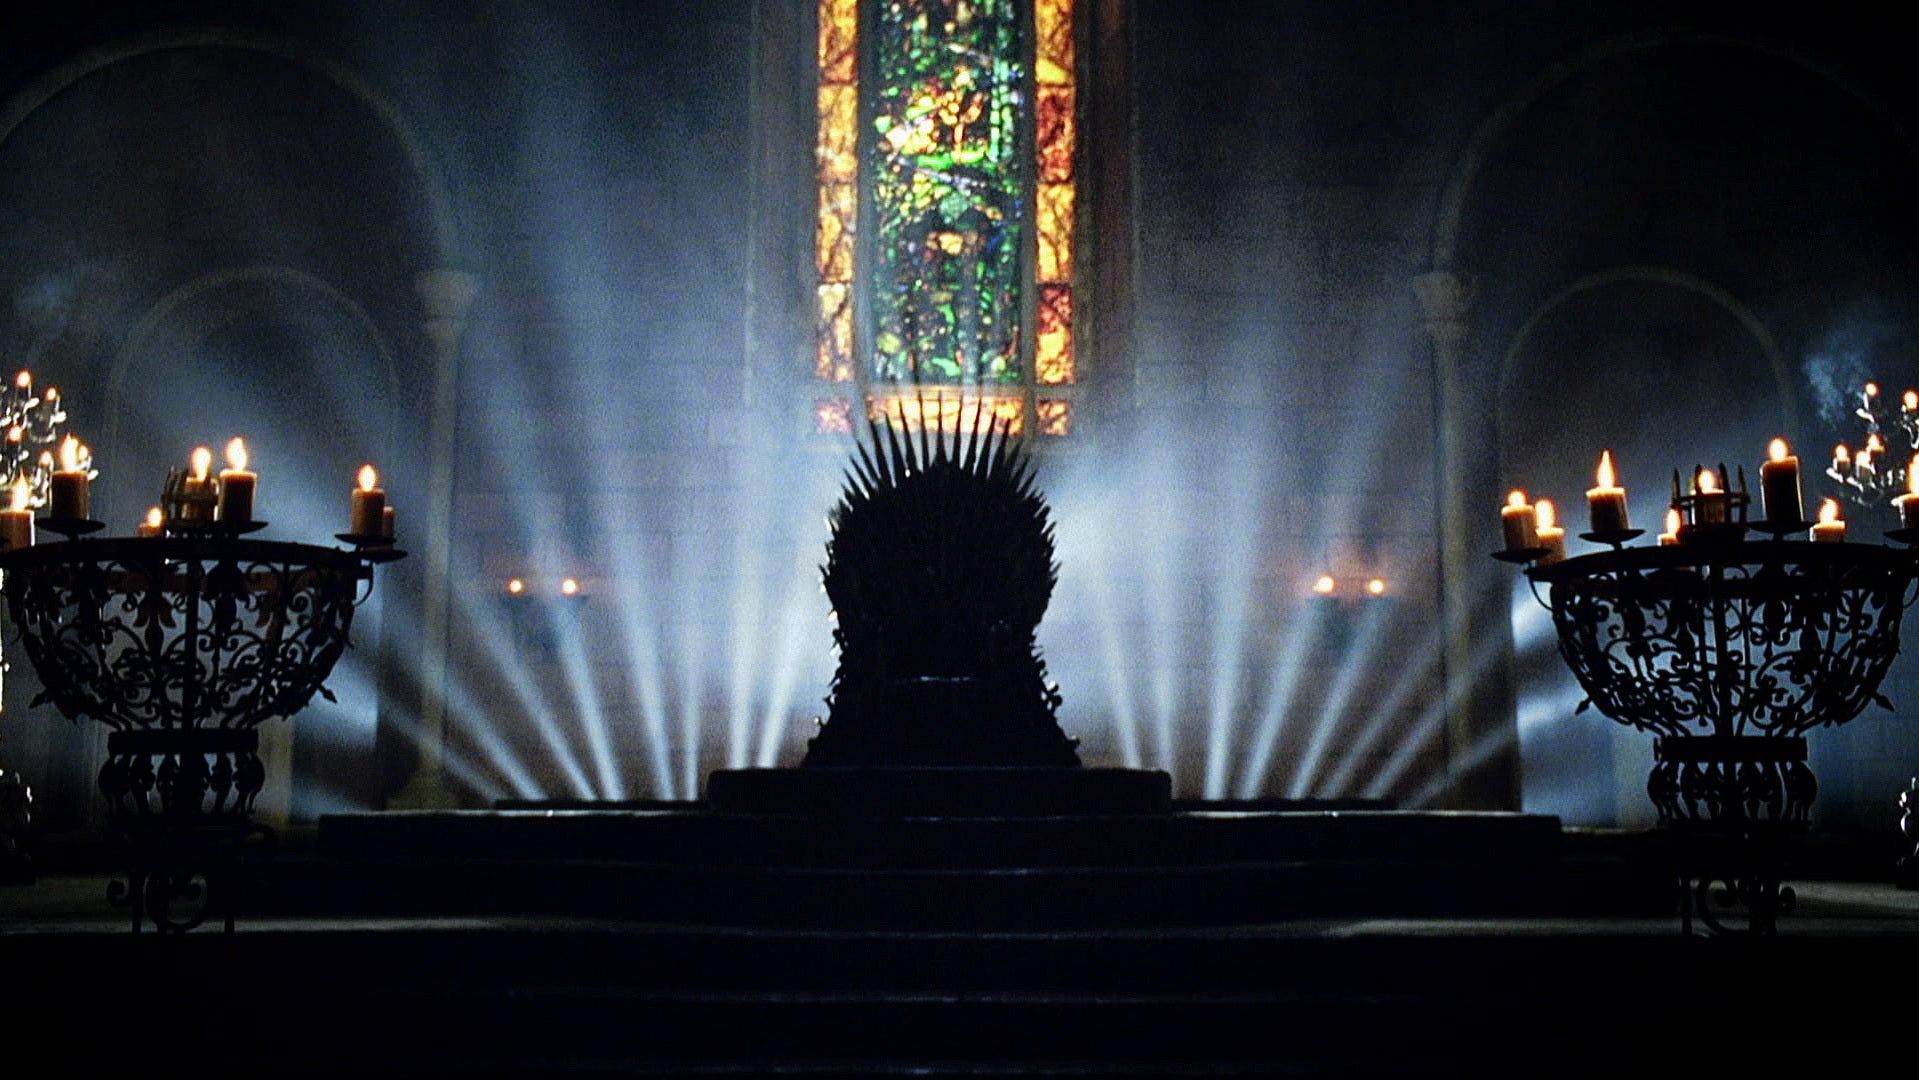 Game OfThronesChallenges You To Find These Actual Iron Thrones